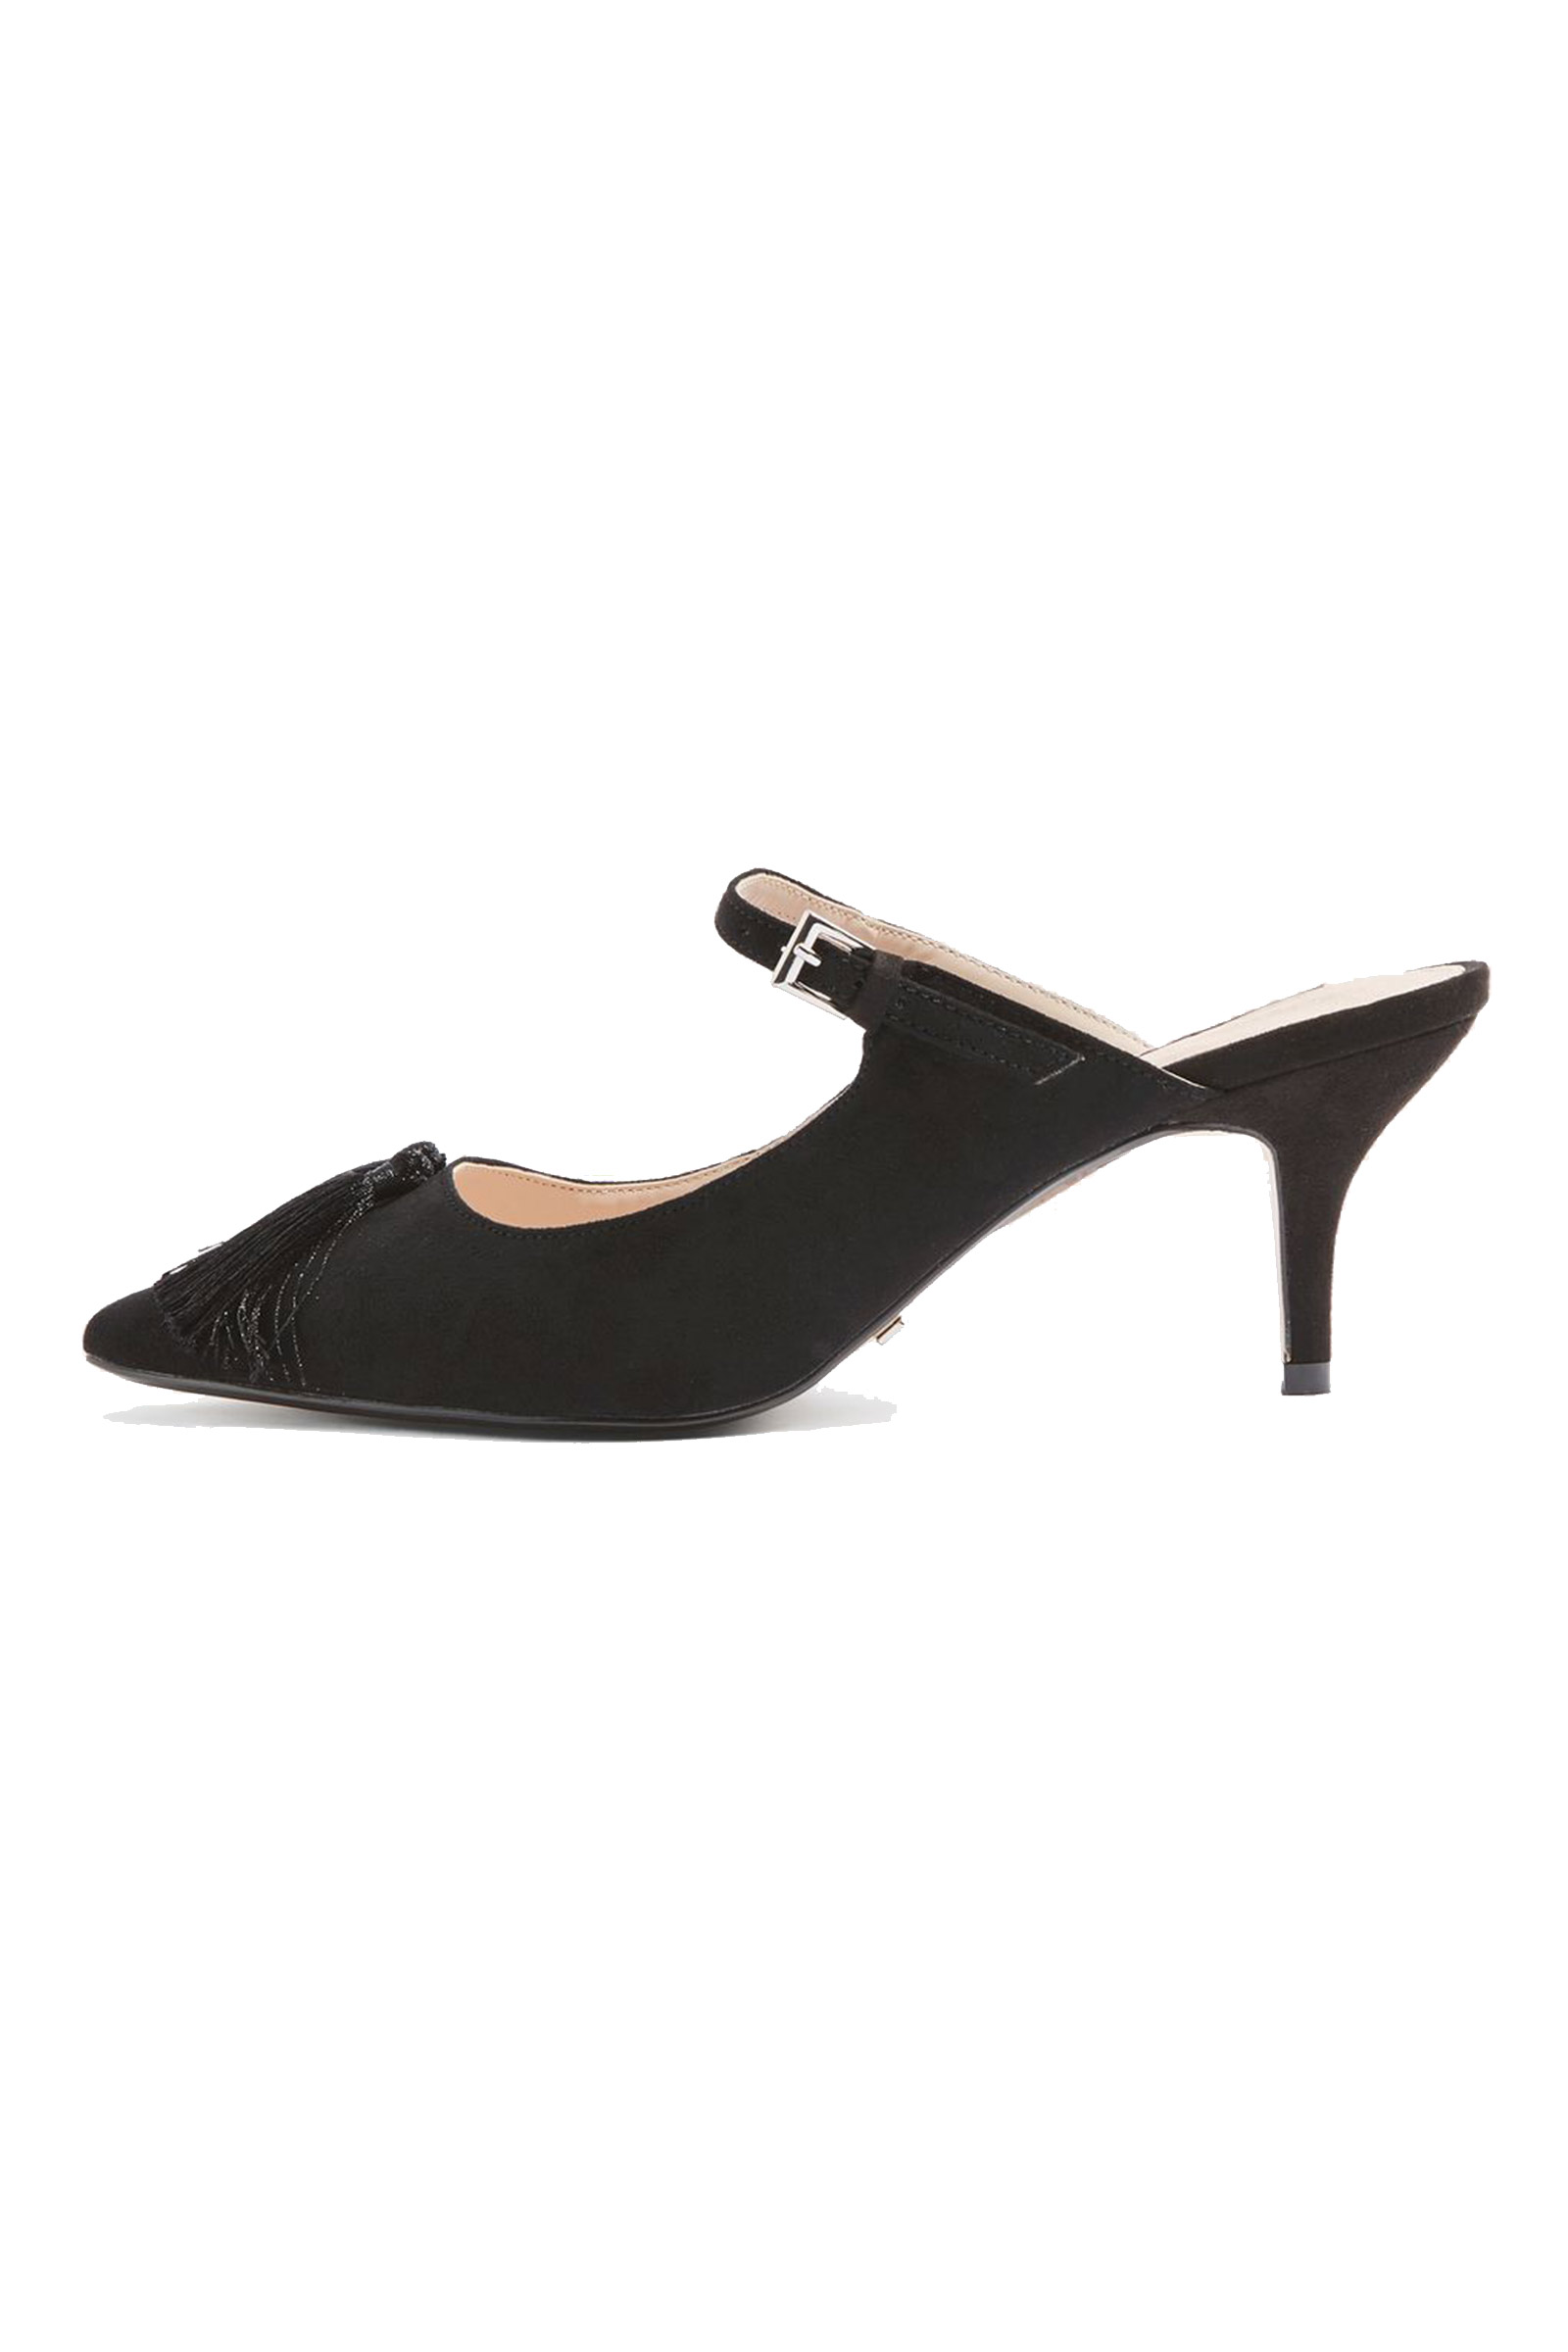 Click to Buy Topshop Black Mules